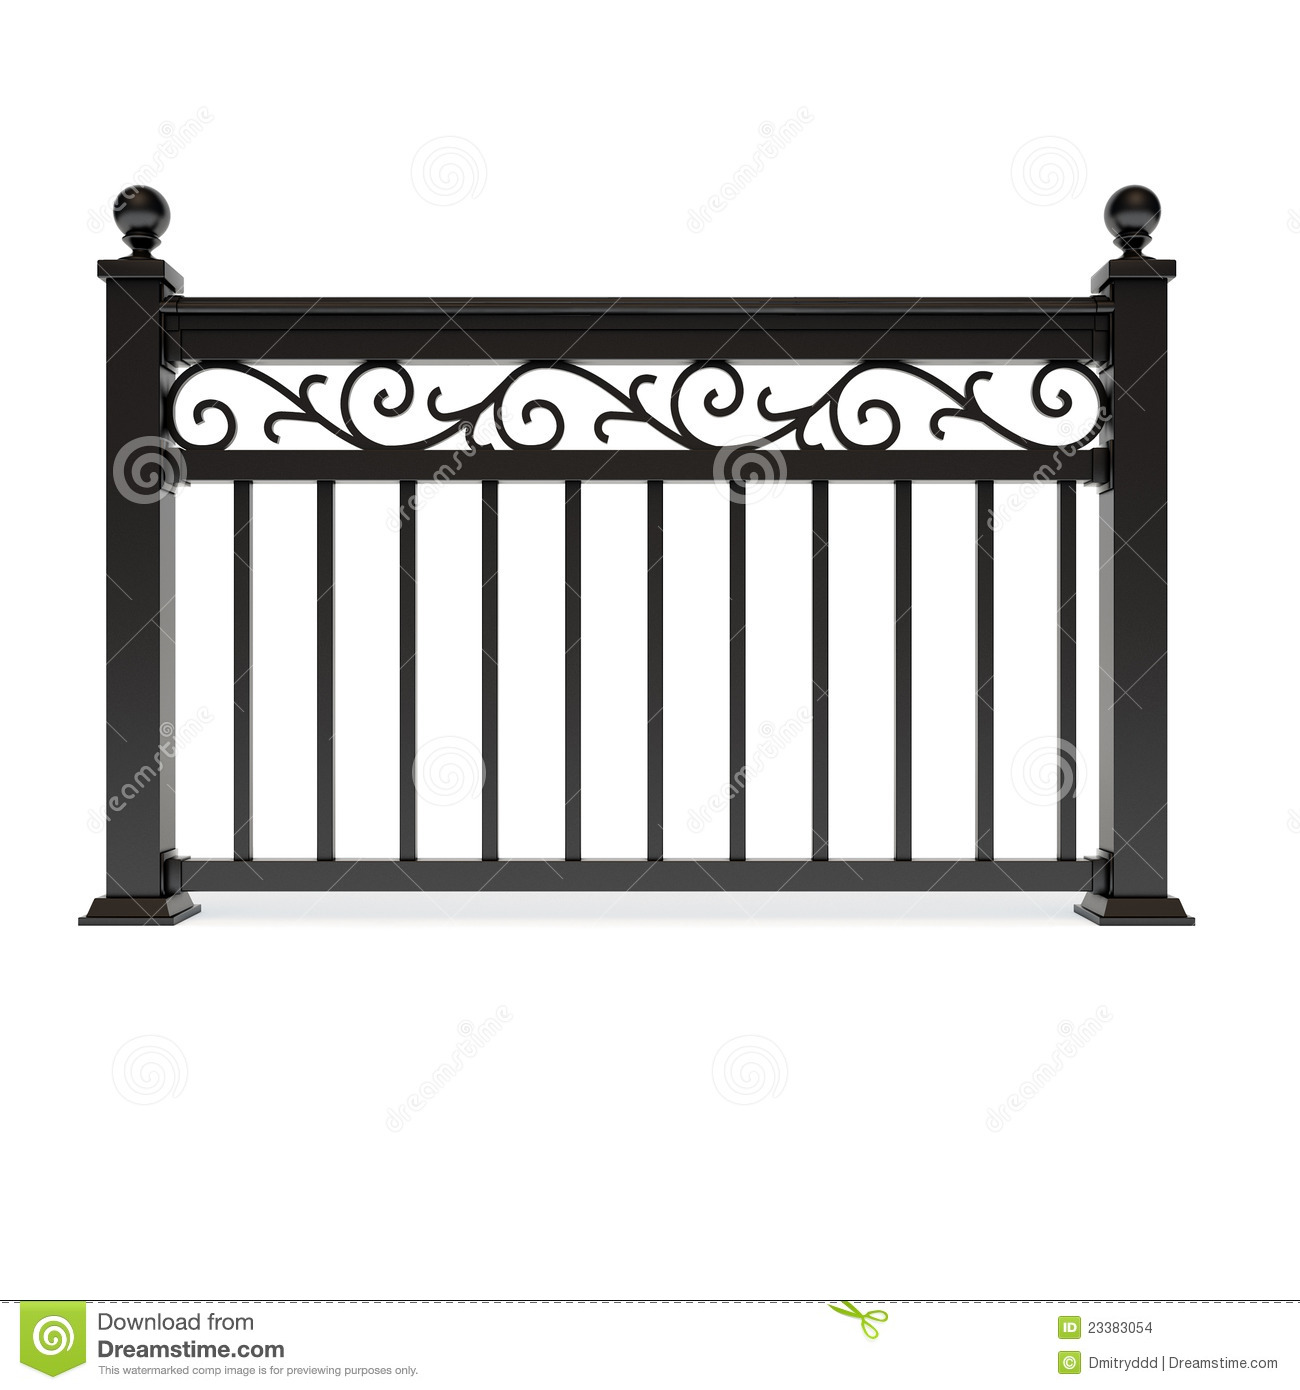 Railings clipart 20 free Cliparts.